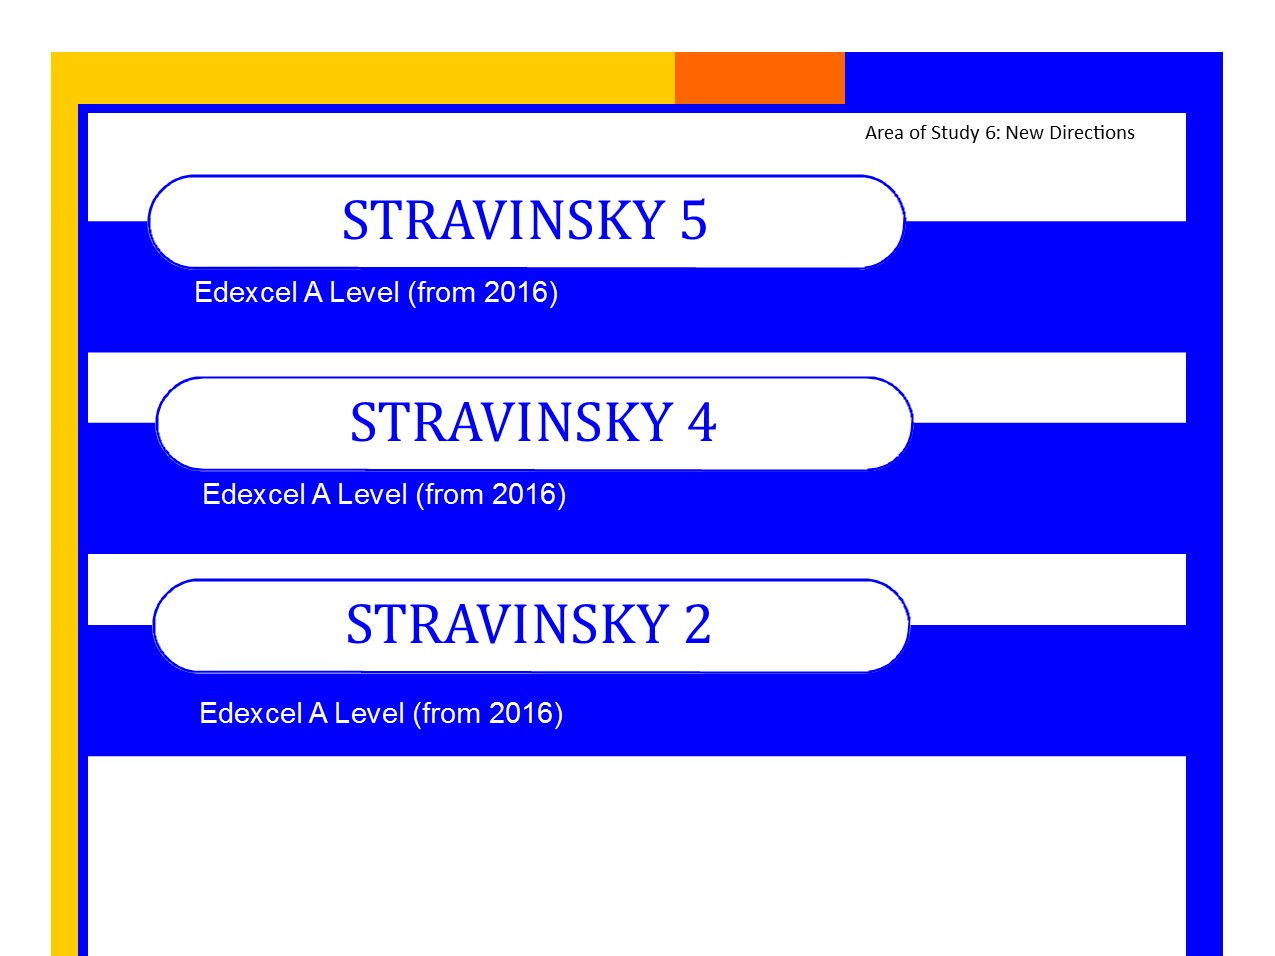 Bundle+ of Edexcel Music A level (from 2016) Stravinsky worksheets 2,4 and 5 PLUS Elements of Music summary sheets.